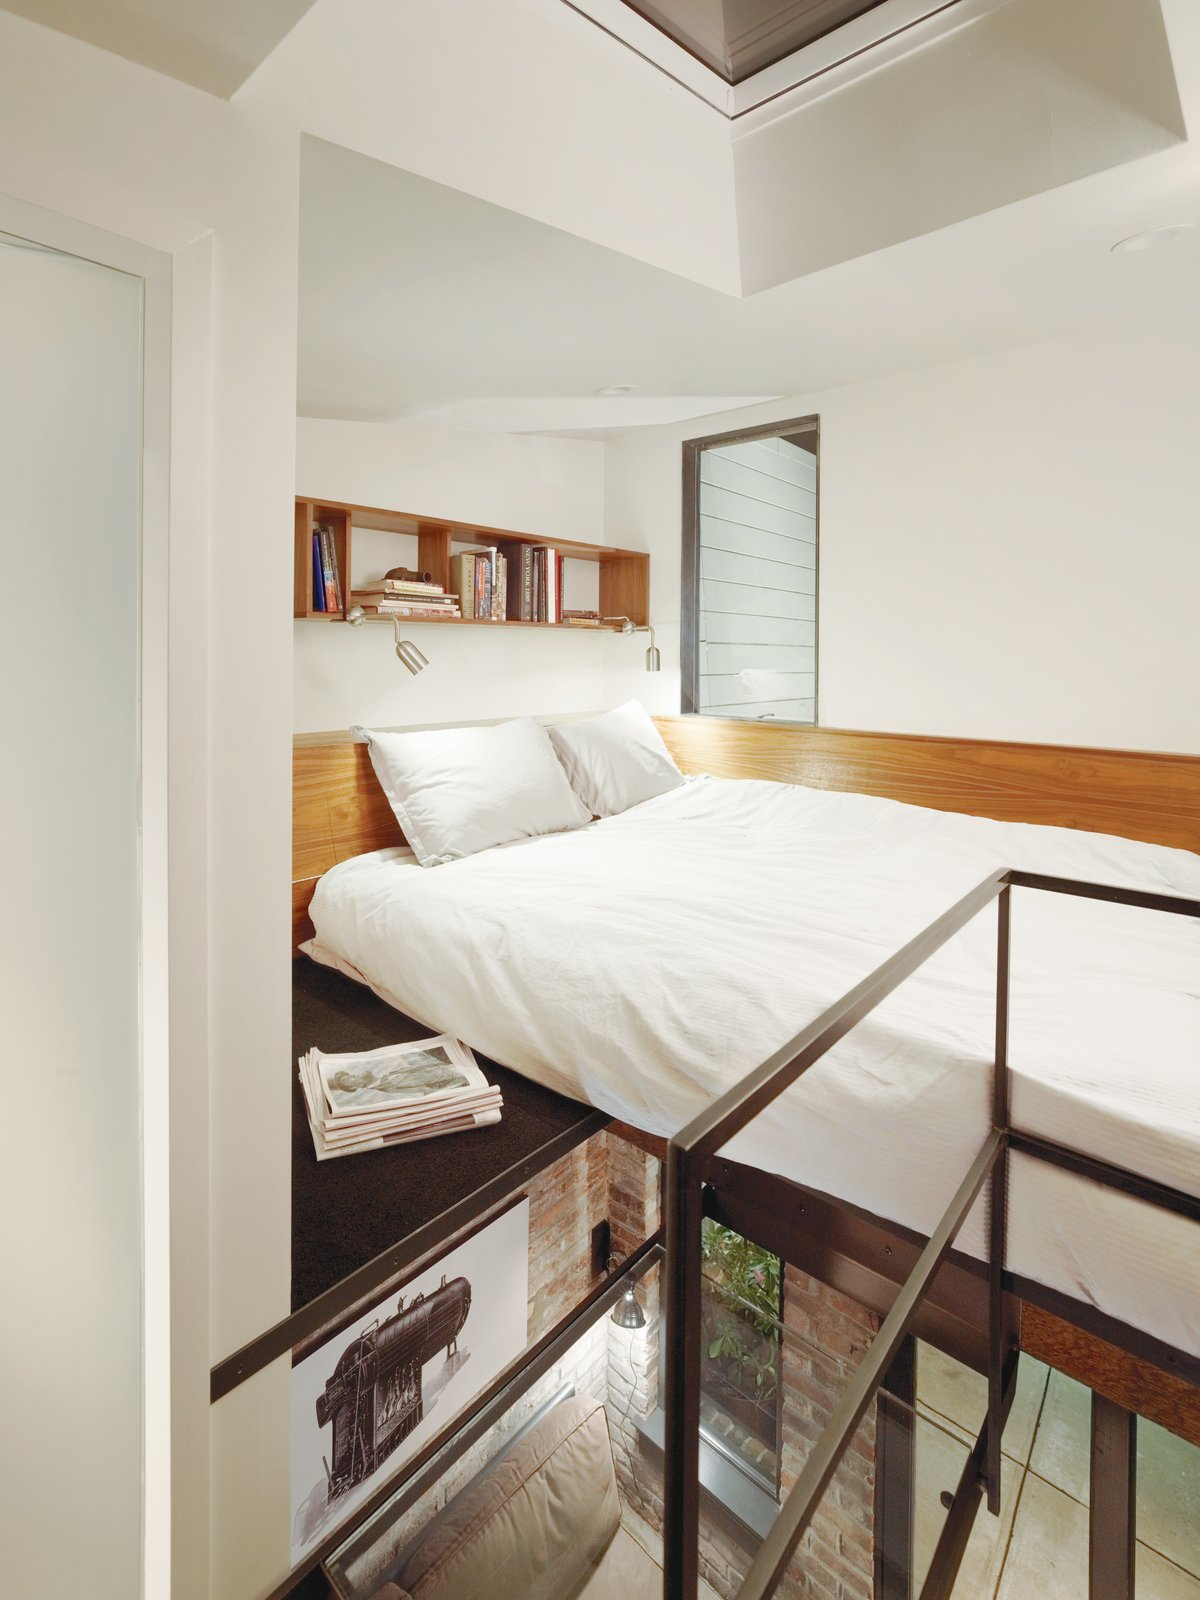 Make Your Space Look Bigger: 10 Lofted Bedrooms - Photo 1 of 10 - The